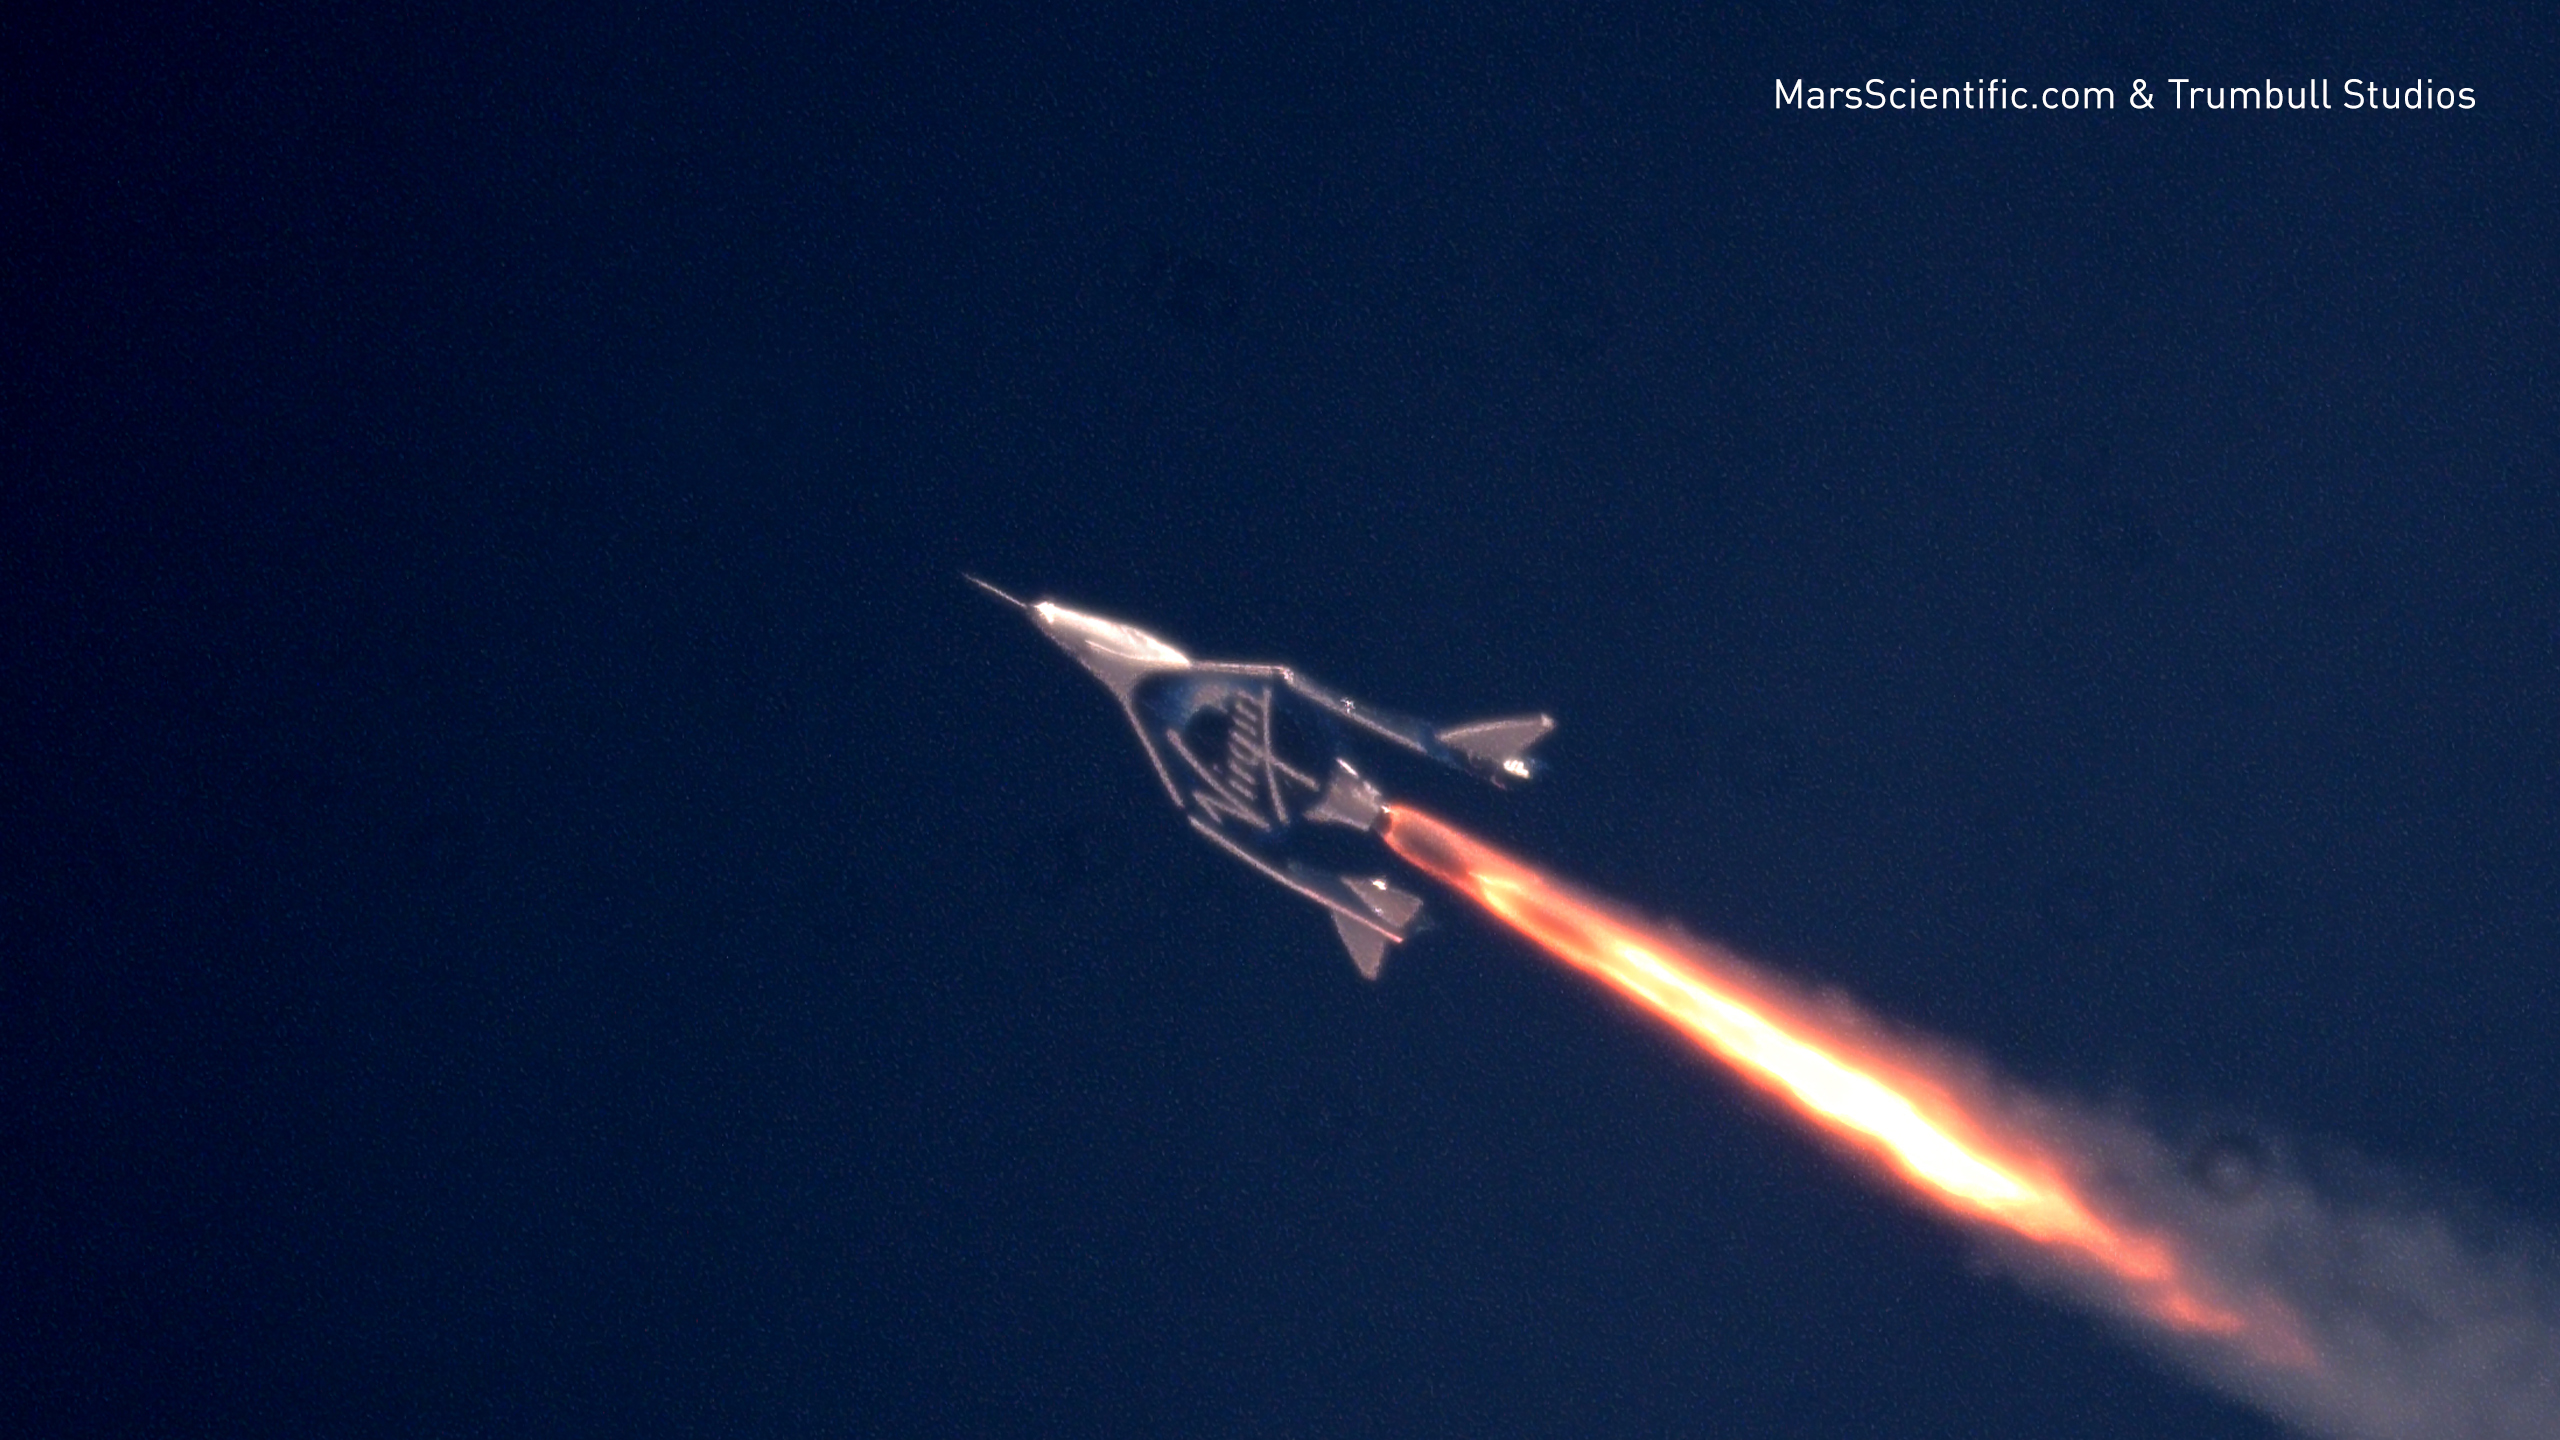 Virgin Galactic Spaceship Breaks Mach 2 Reaches Mesosphere For The